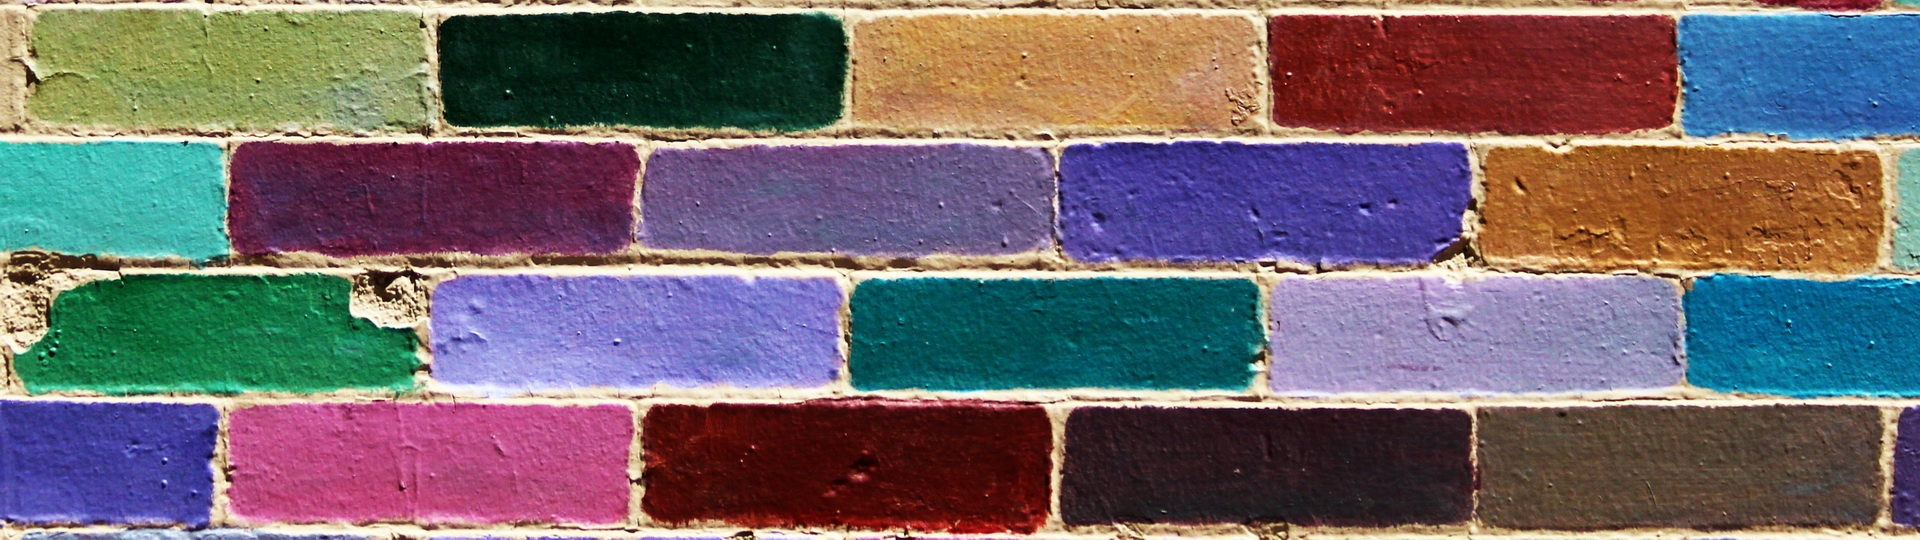 Bricks, by Quinn Dombrowski on Flickr. Creative Commons